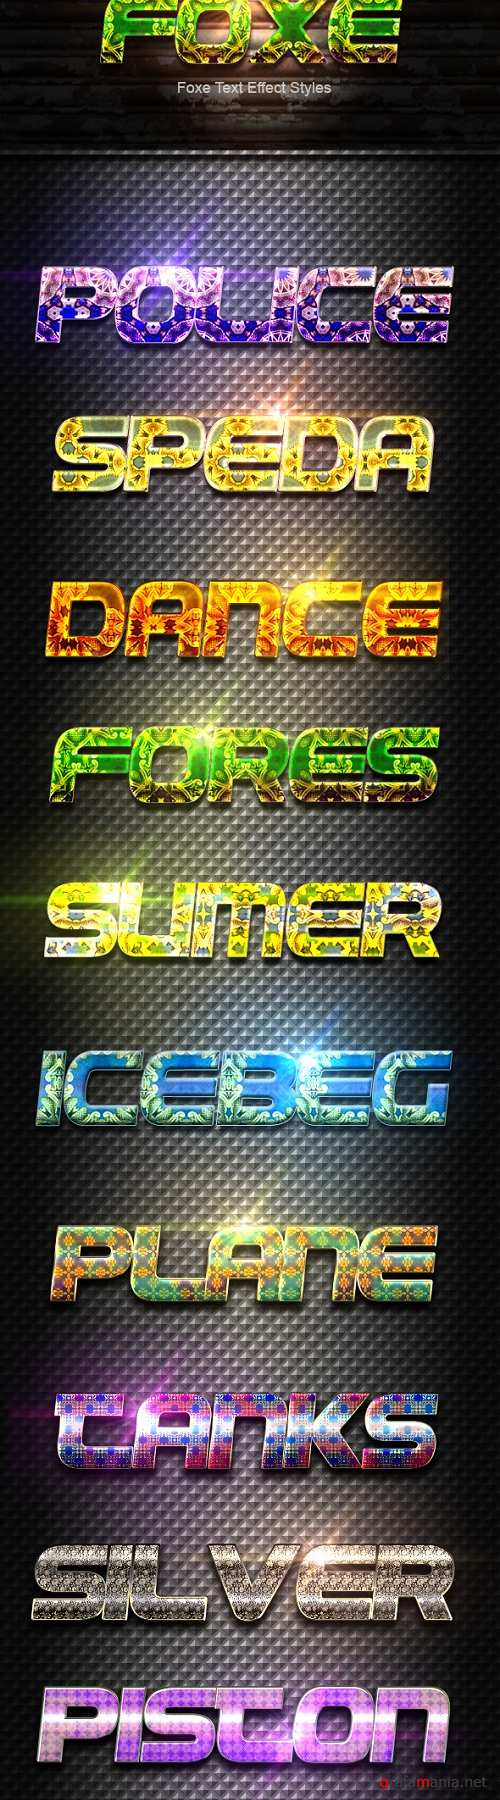 Foxe Text Effect Styles - 19810236